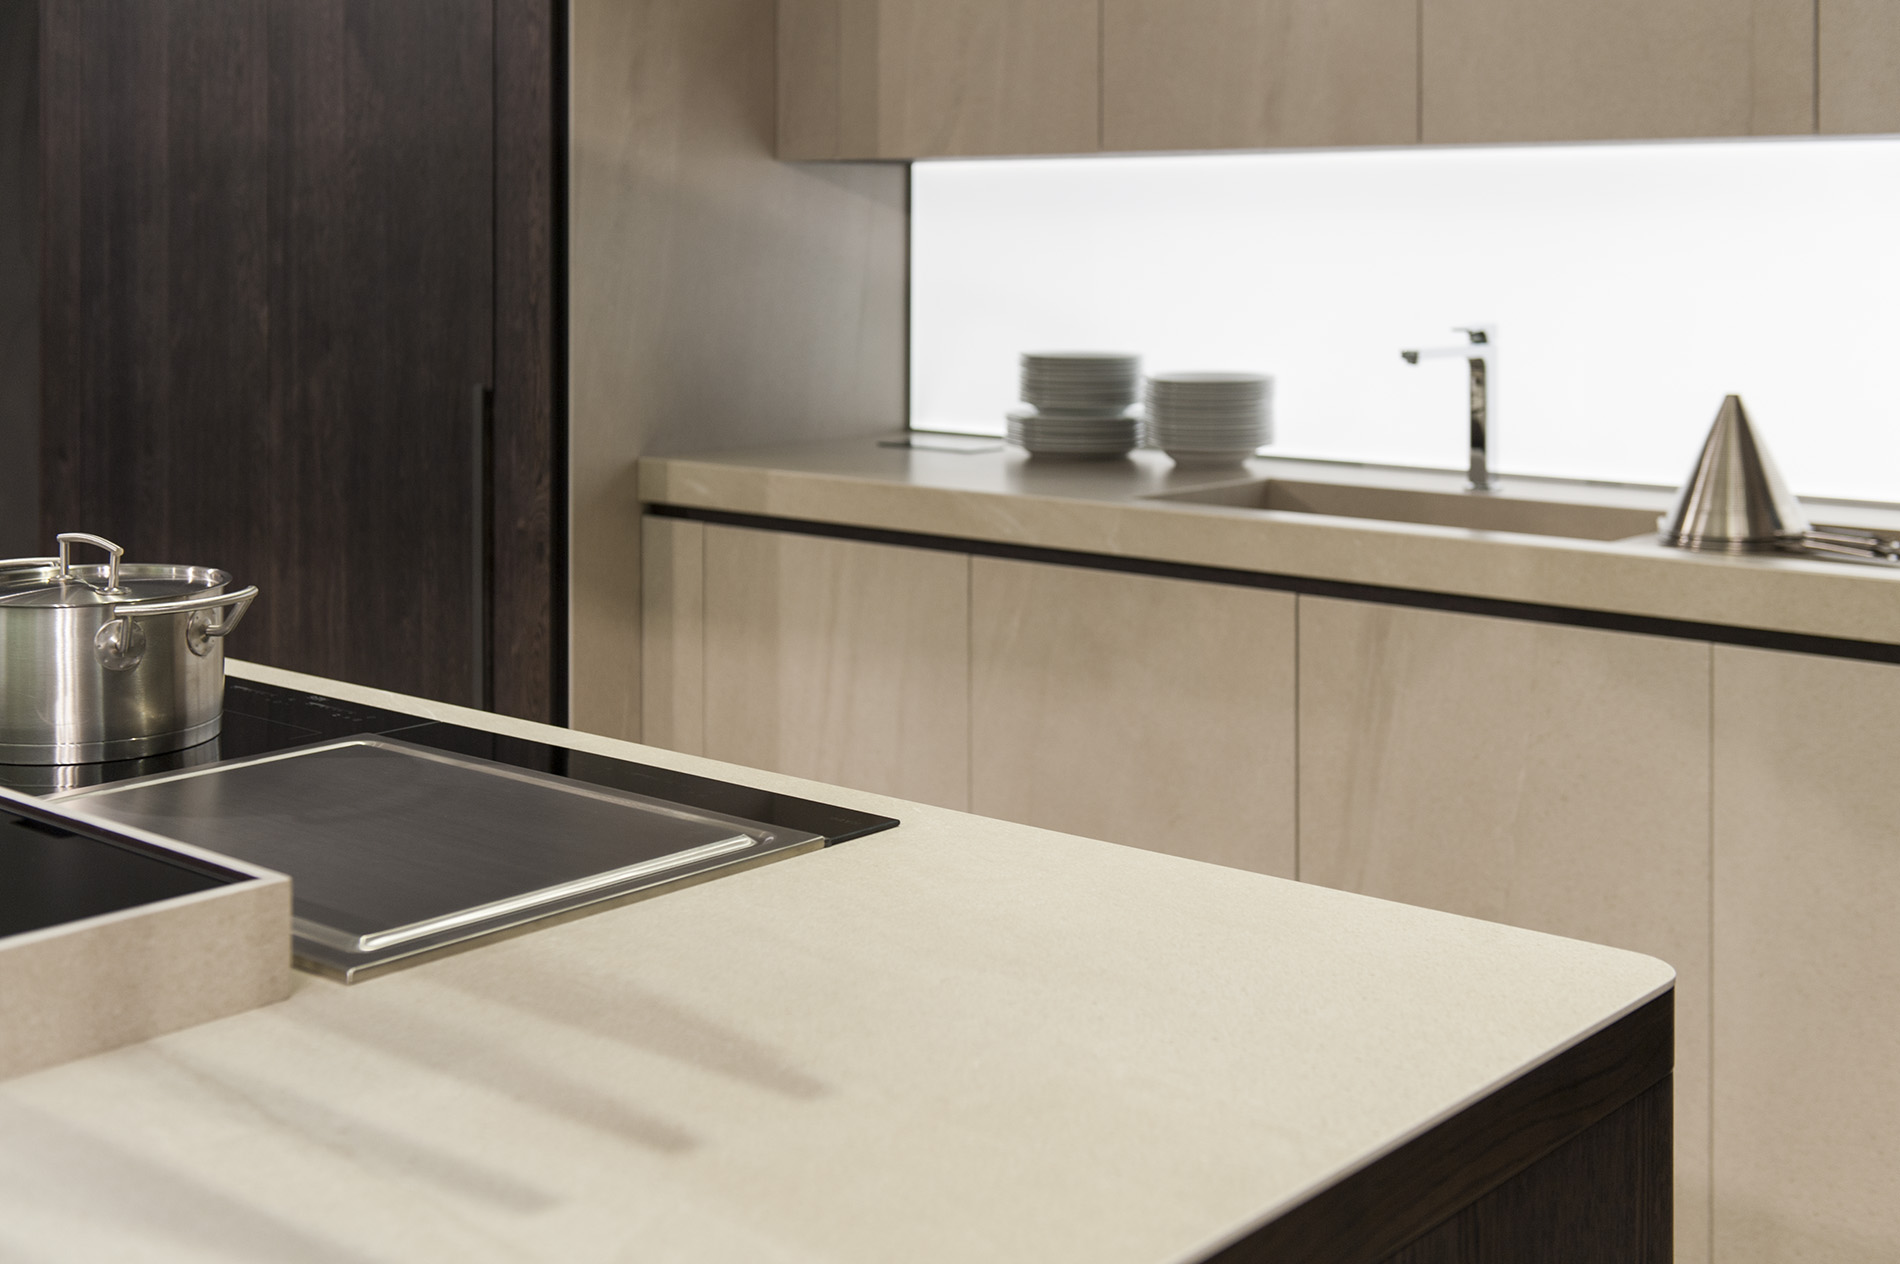 Porcelanosa Kitchen Cabinets Exclusive Kitchens Featuring Xtone Countertops Xtone Archello